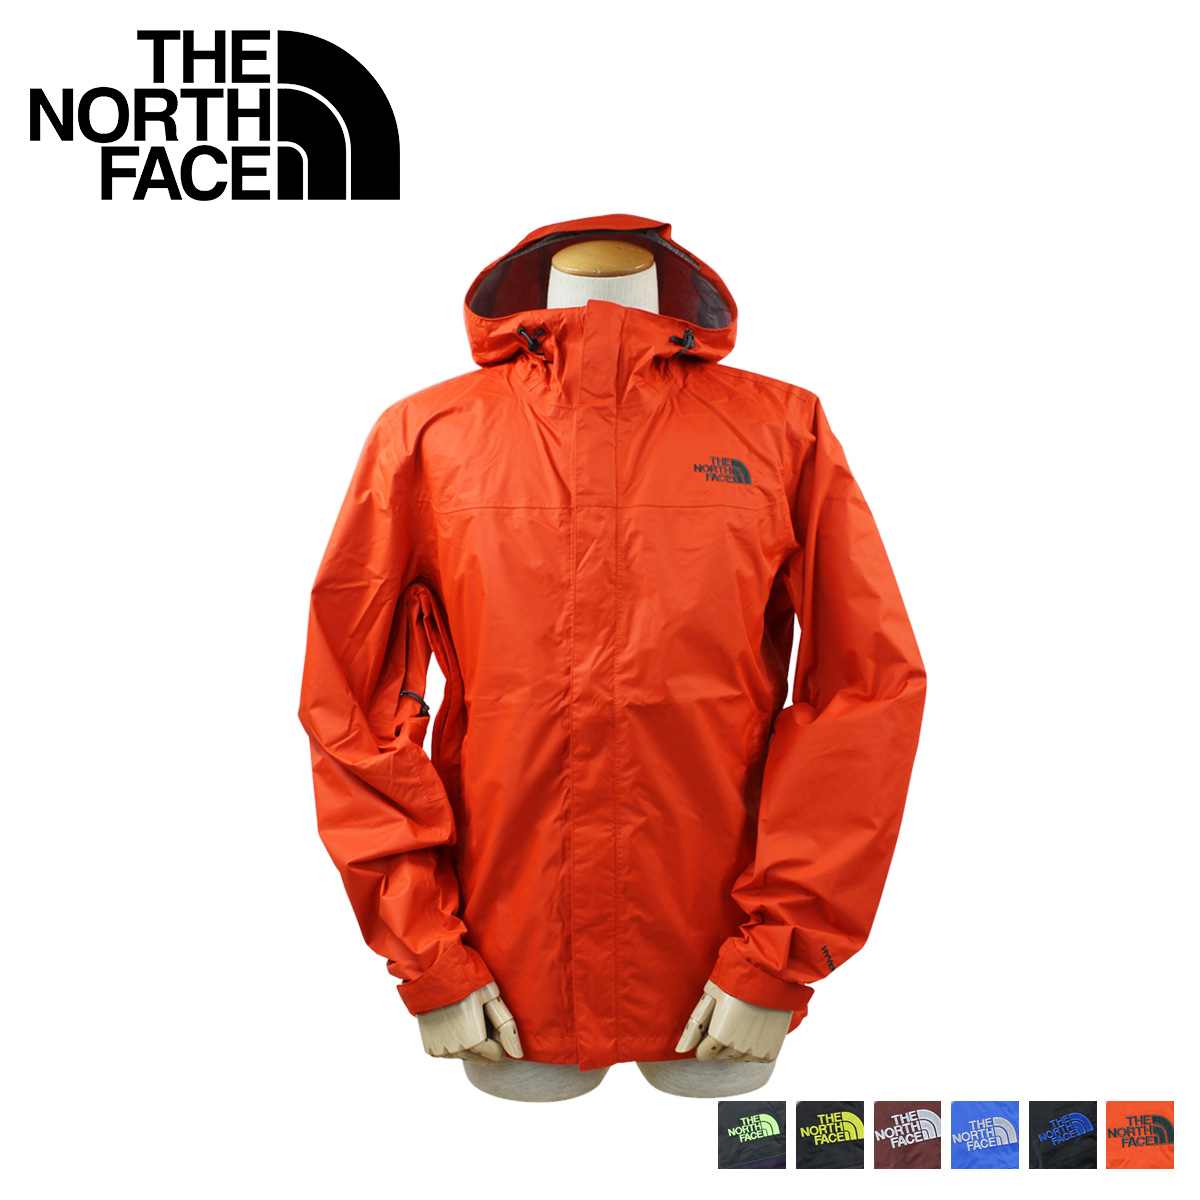 2f9676cb3904 Whats up Sports  THE NORTH FACE north face jacket nylon jacket MEN S ...